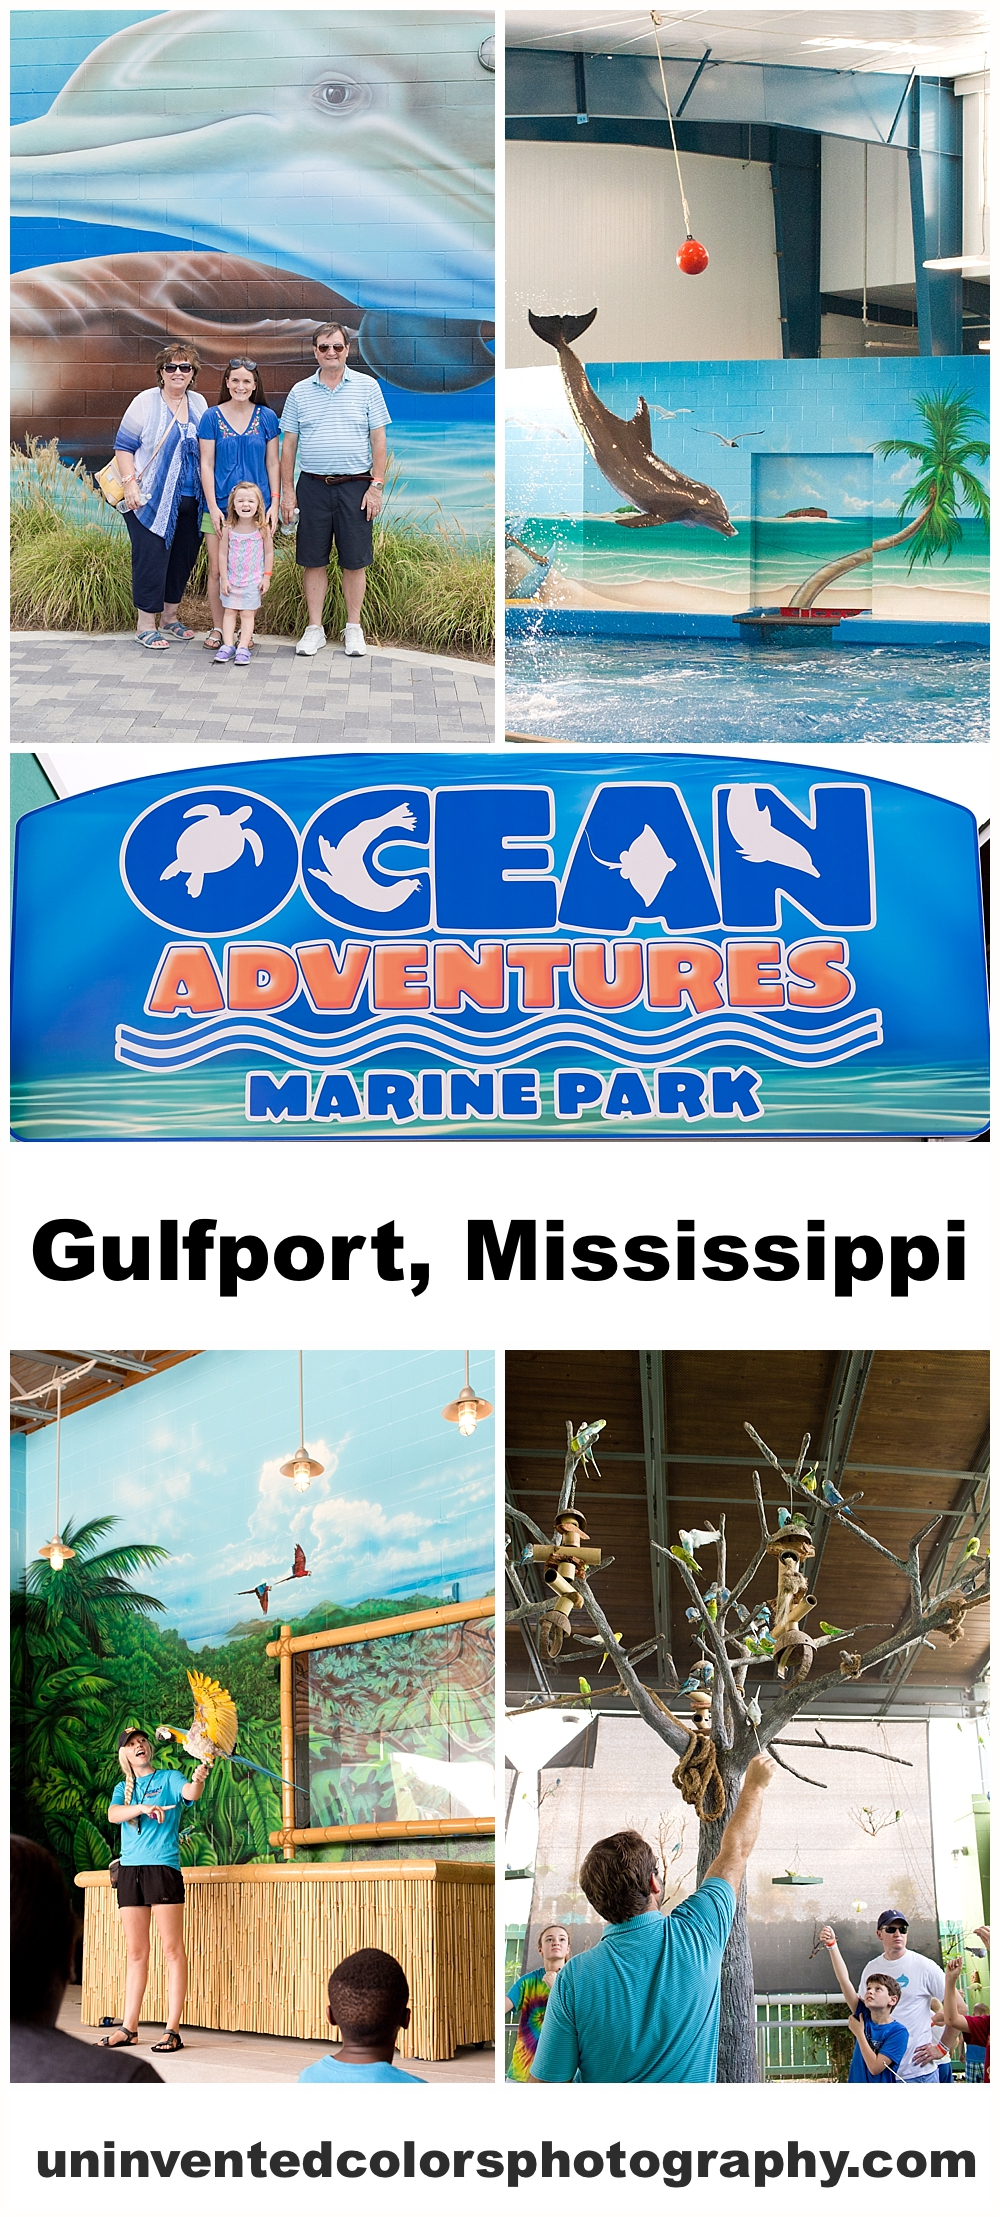 family visit to Ocean Adventures Marine Park - fun things to do with family in Gulfport, Mississippi blog post